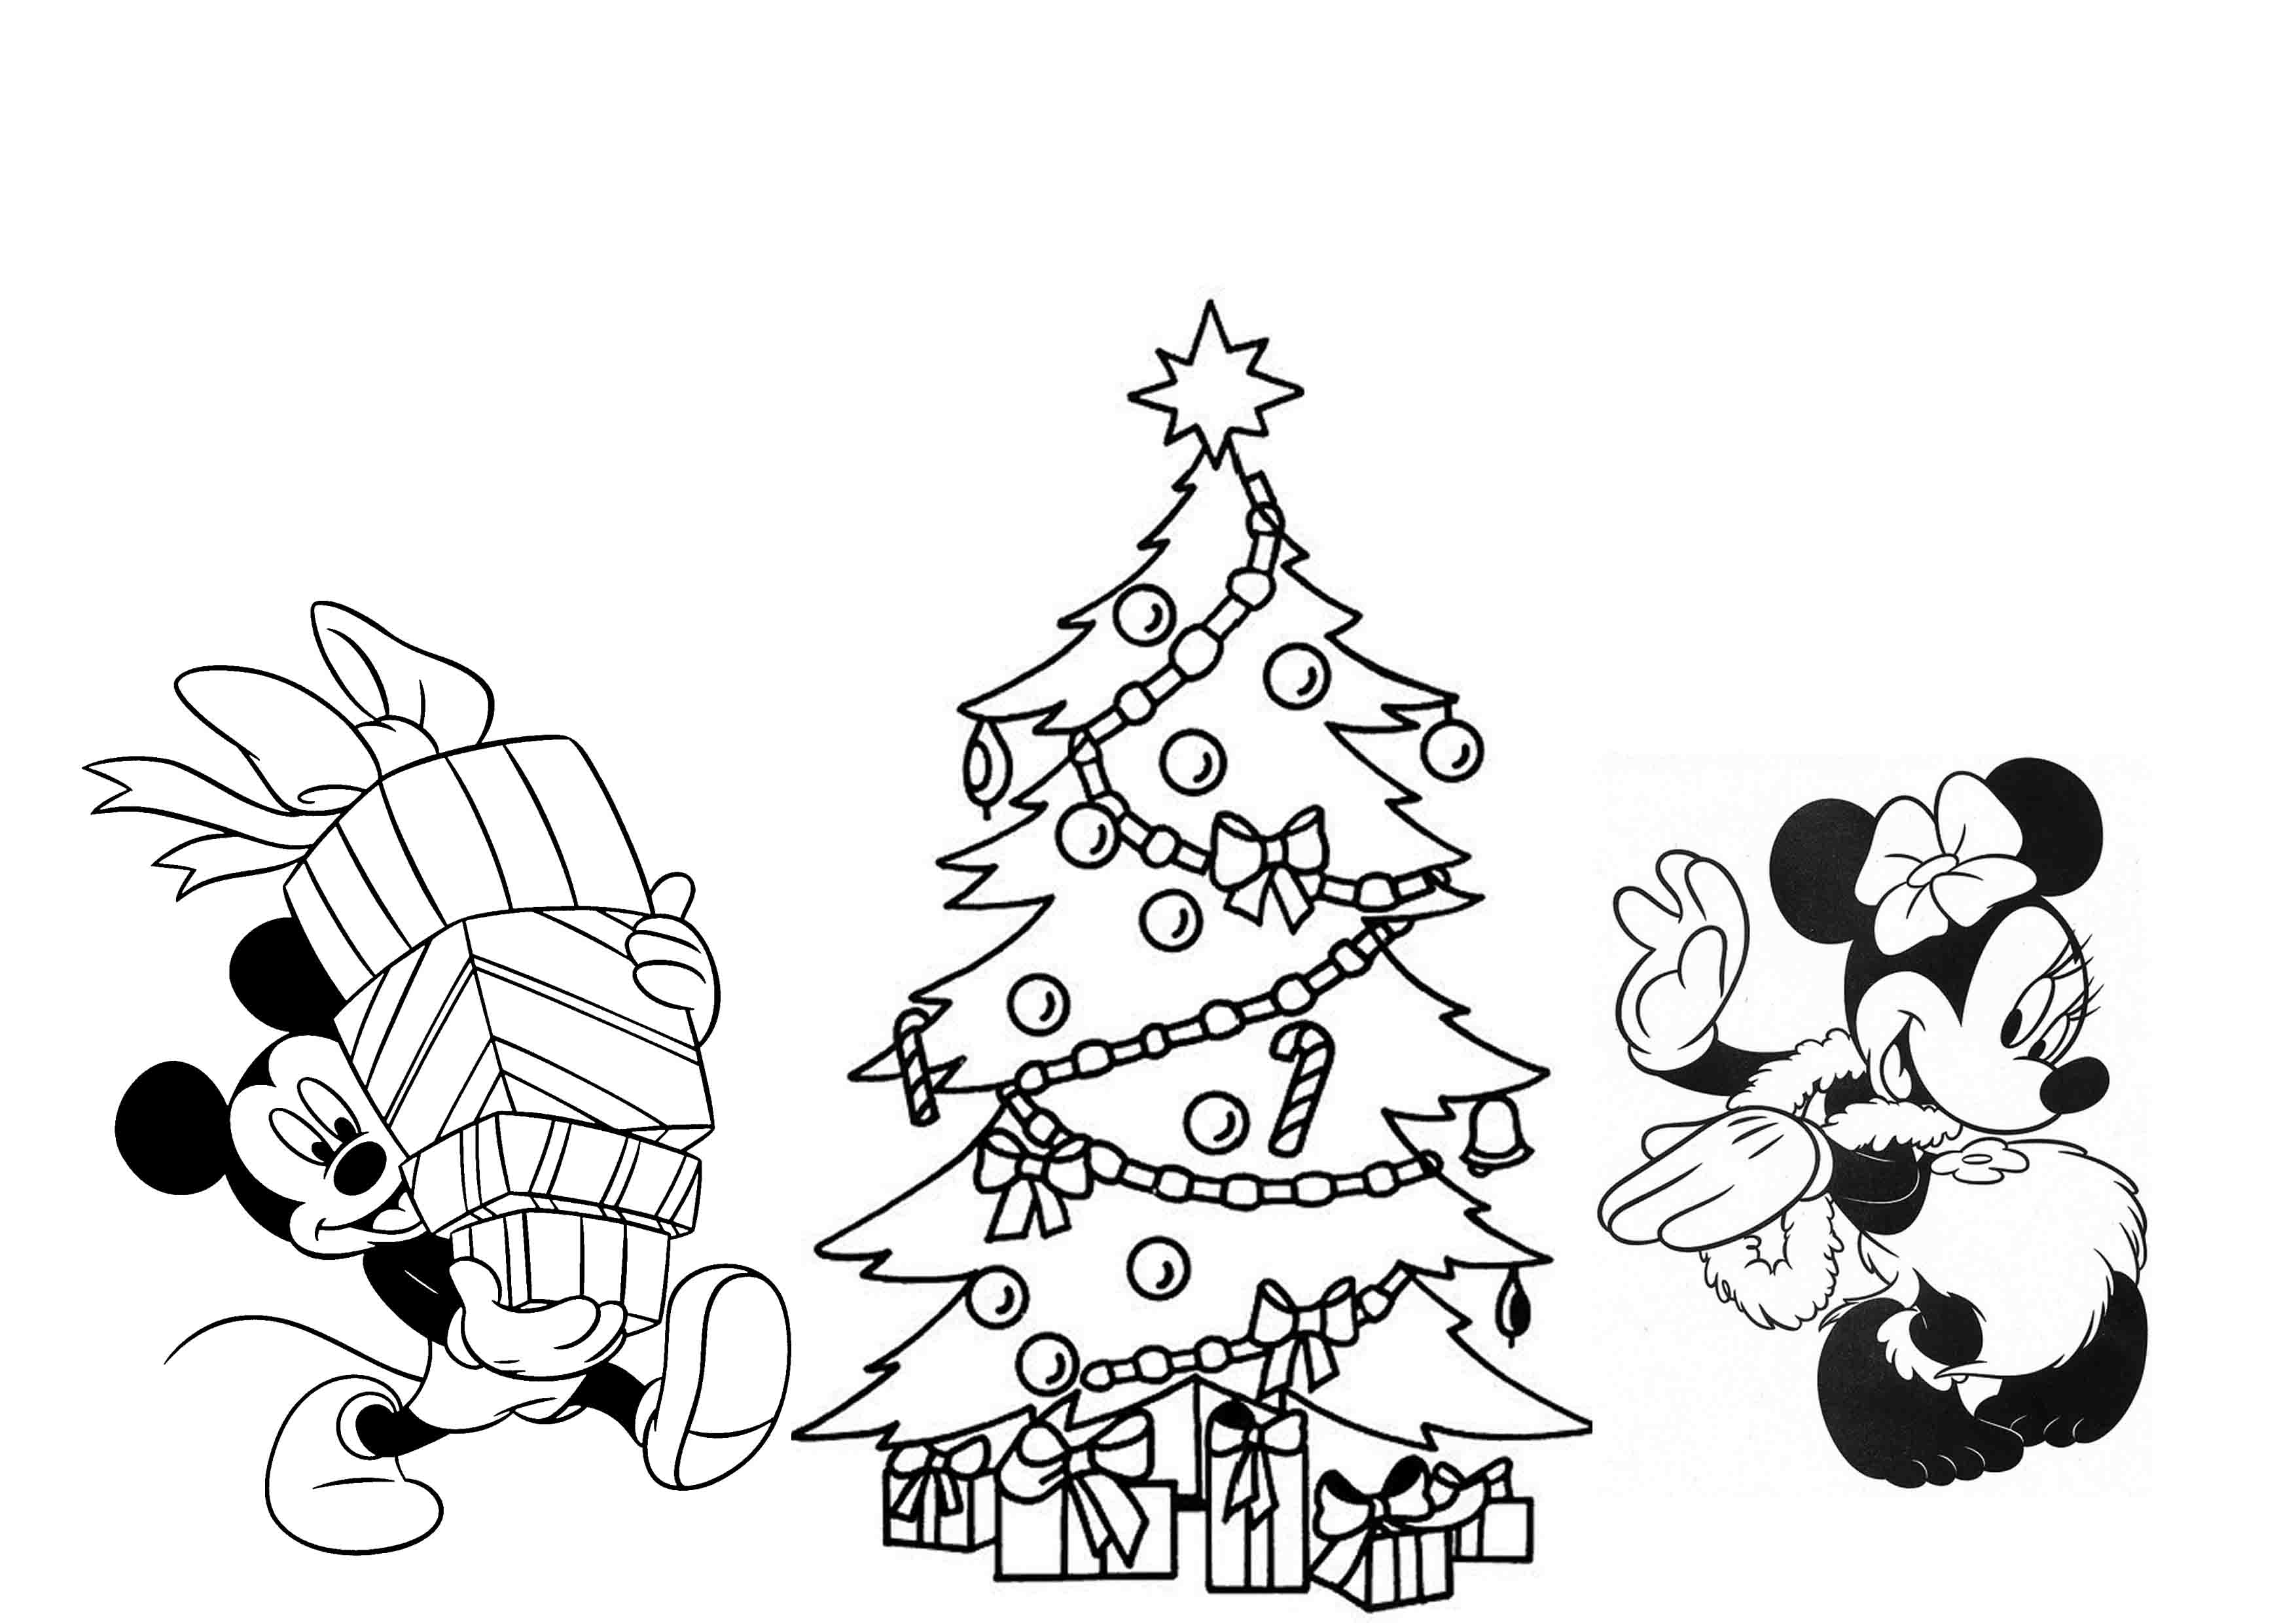 Christmas Colouring Pages Kindergarten With Print Download Printable Coloring For Kids